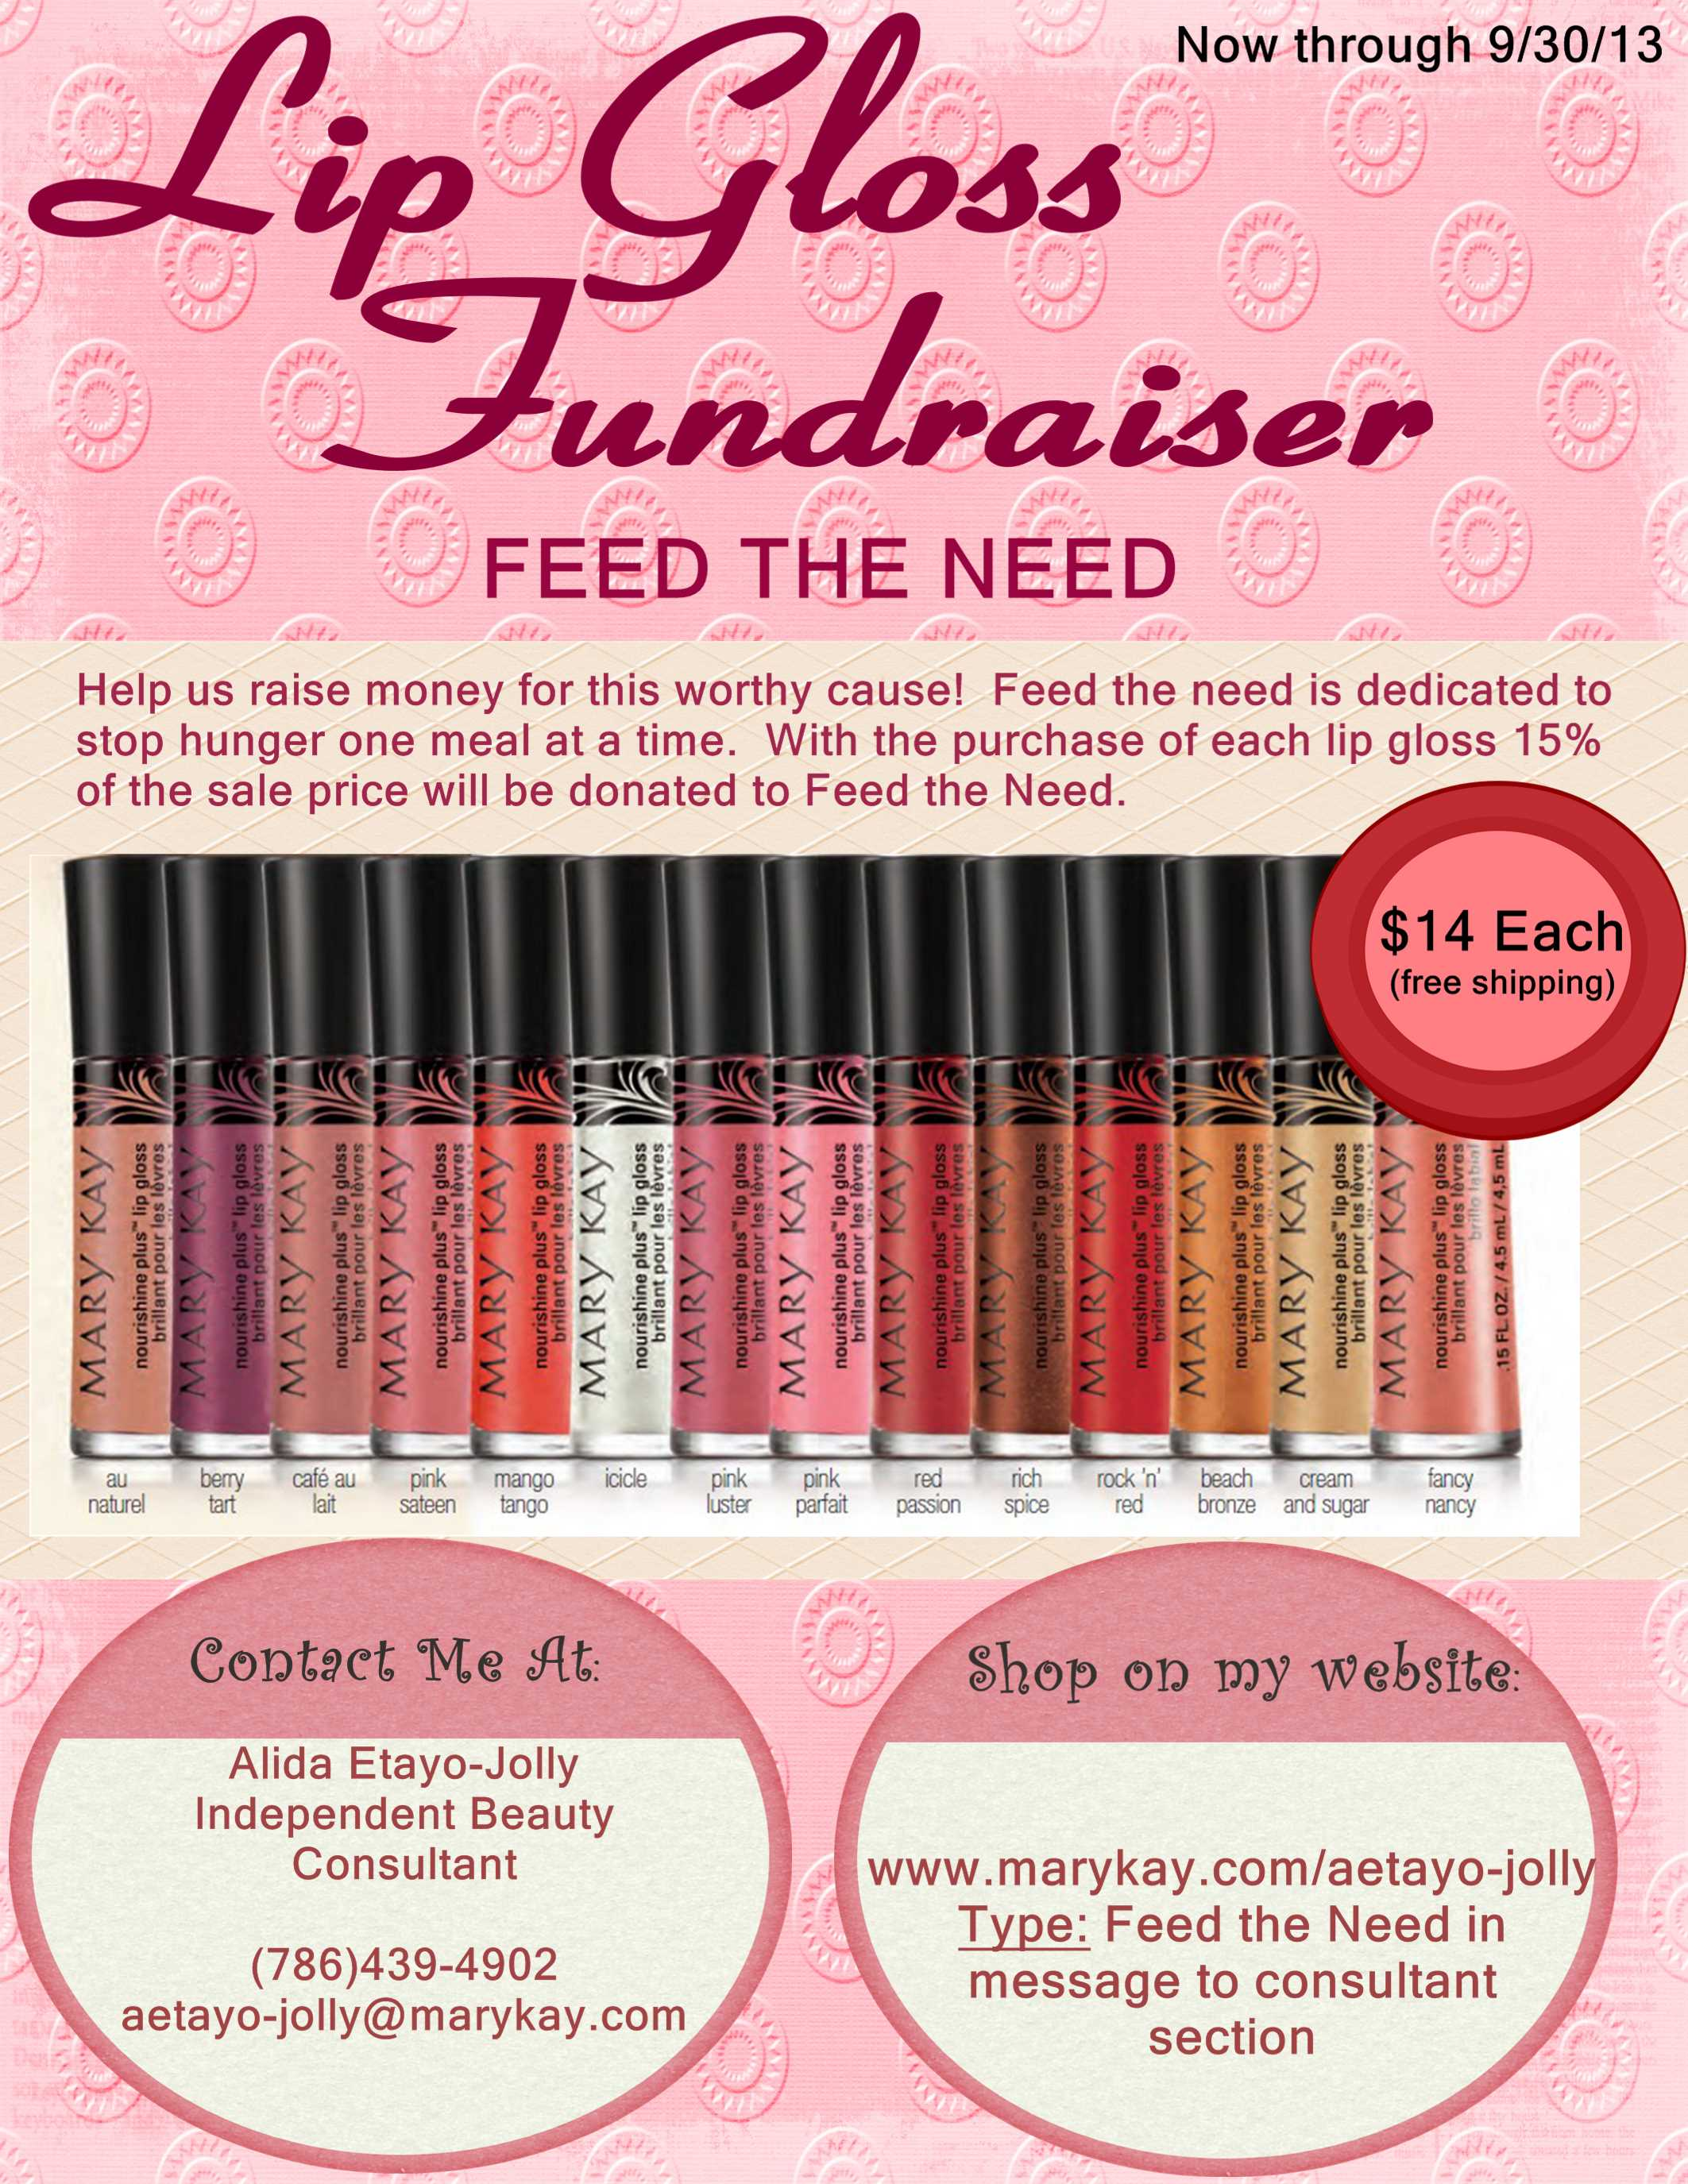 Buy A Lip Gloss To Help Feed The Need